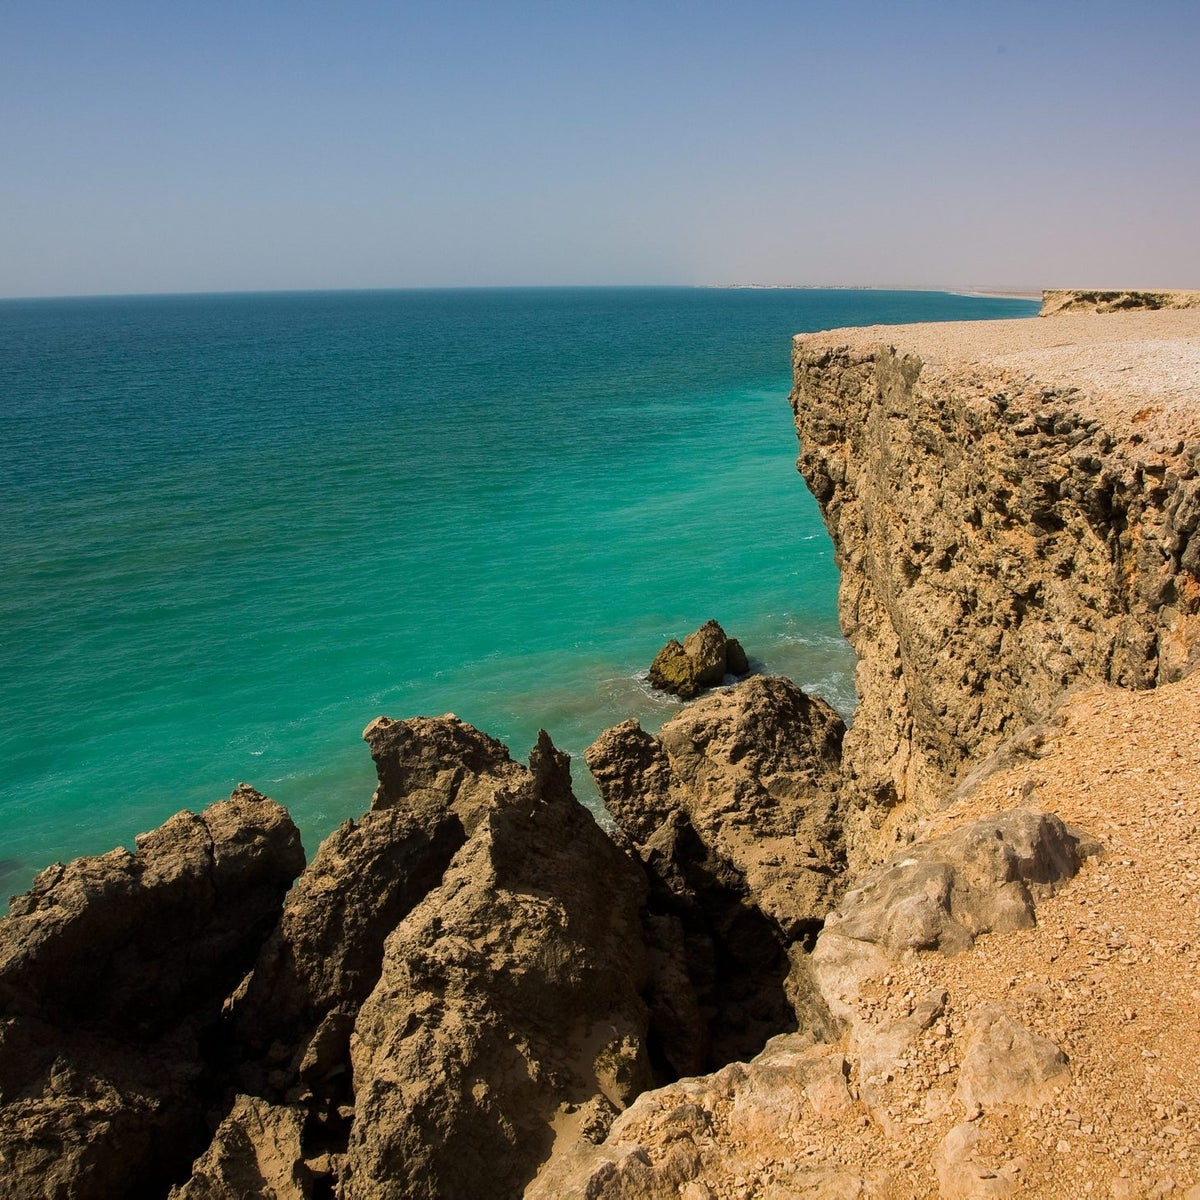 The beautiful sea off Oman - where the waters turn out to be particularly prone to deoxygenization.